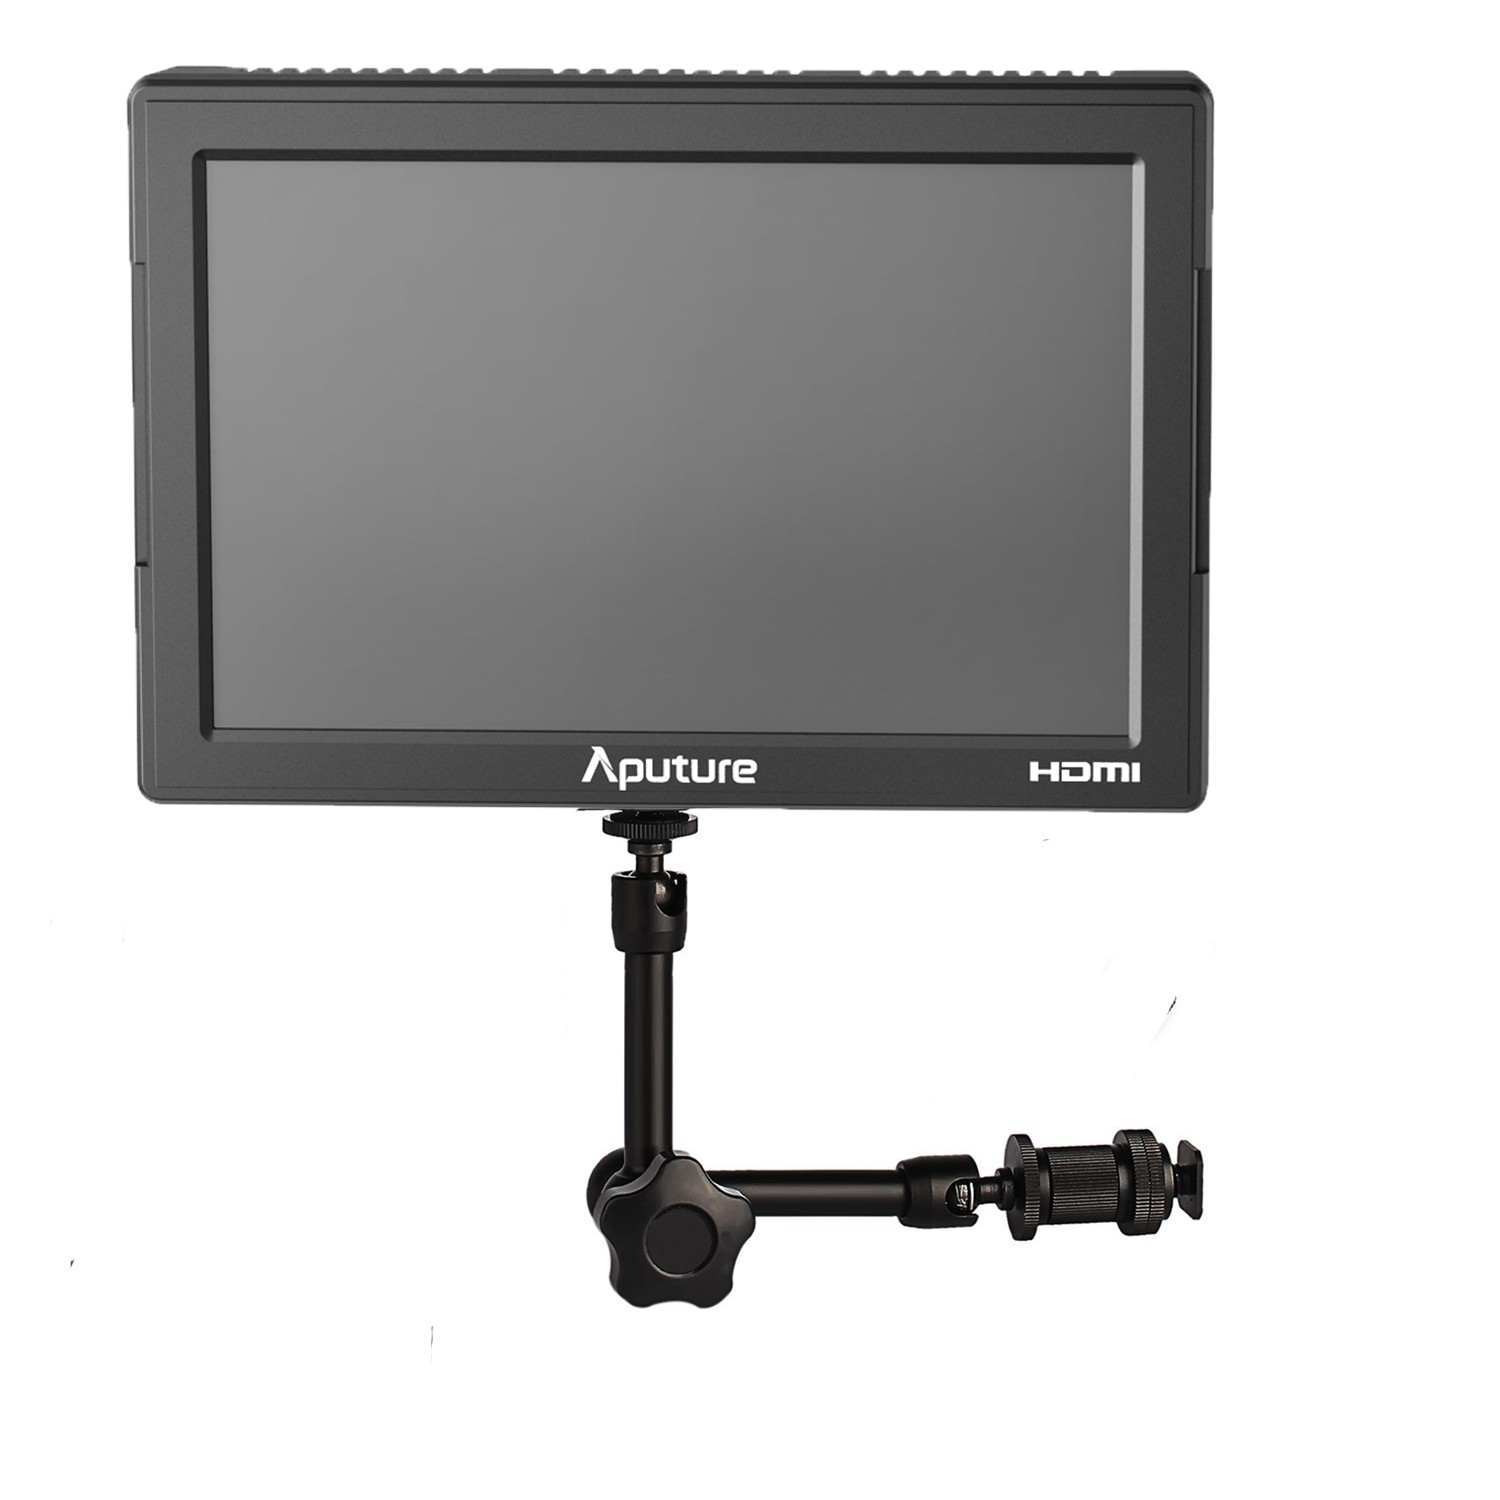 Aputure VS-5 HD-SDI HDMI 1920*1200 Video Monitor + 7 inch Magic Arm for Sony Canon Nikon DSLR Camera